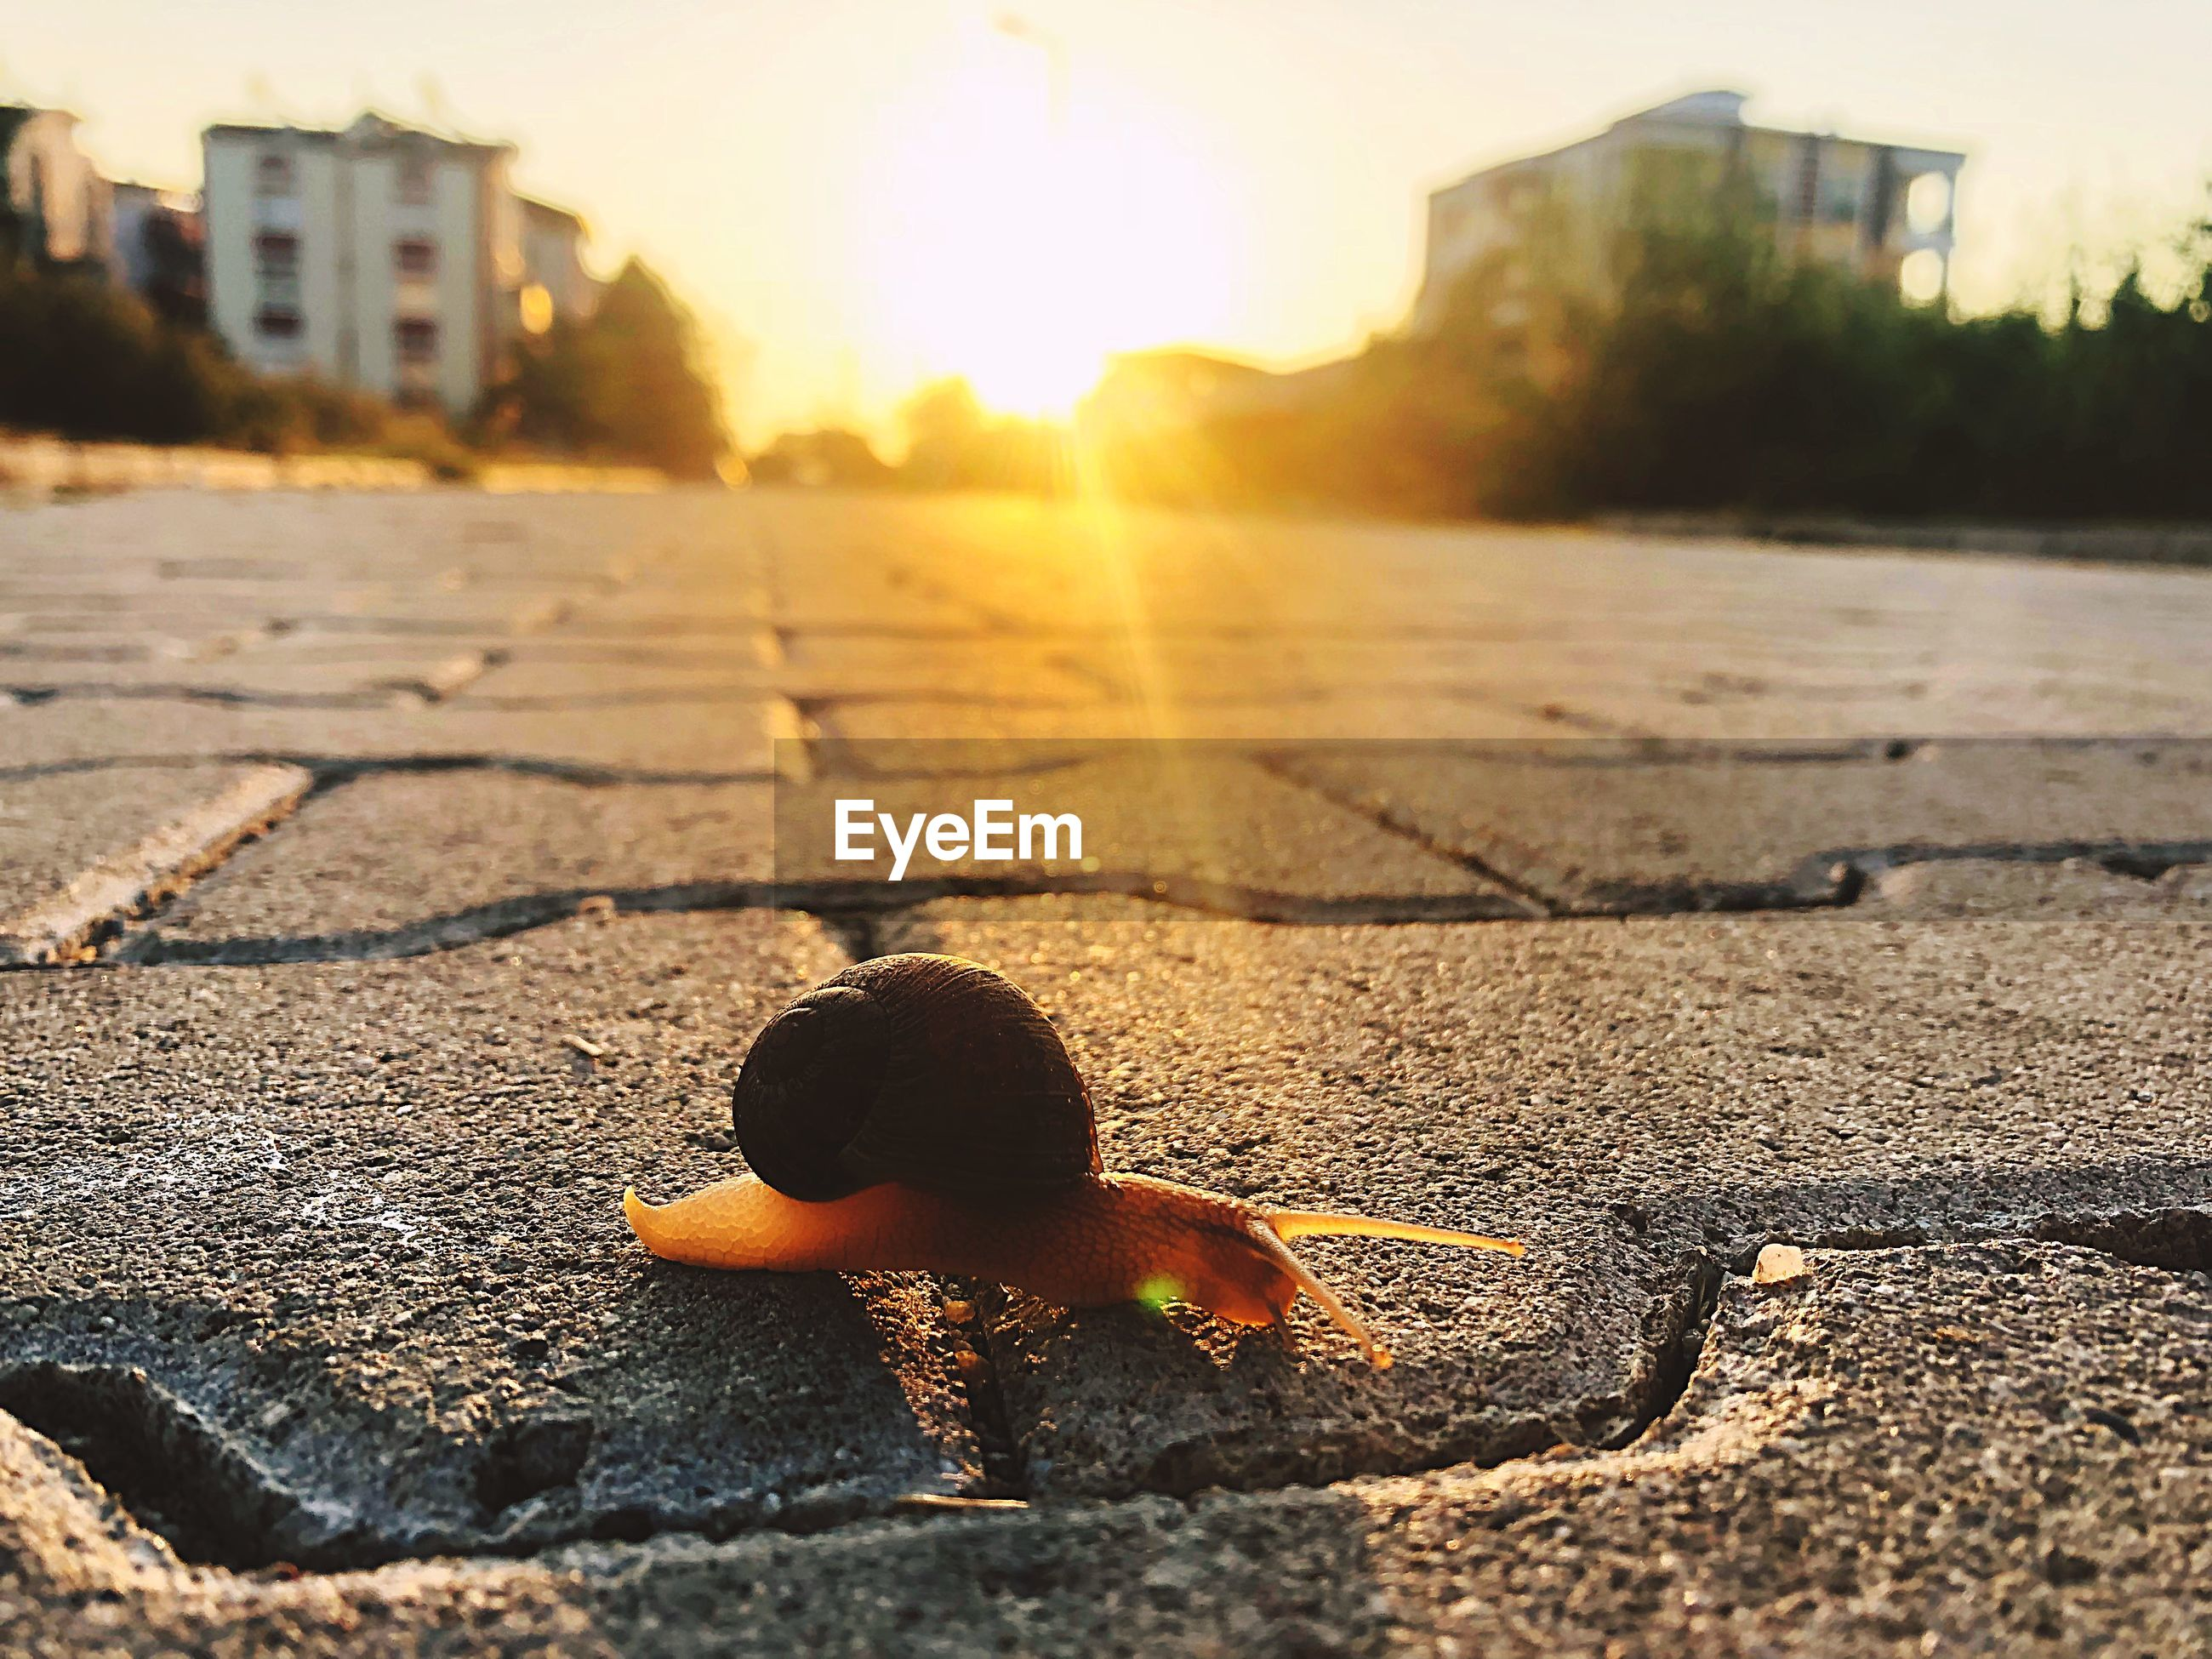 Close-up of snail on footpath during sunset